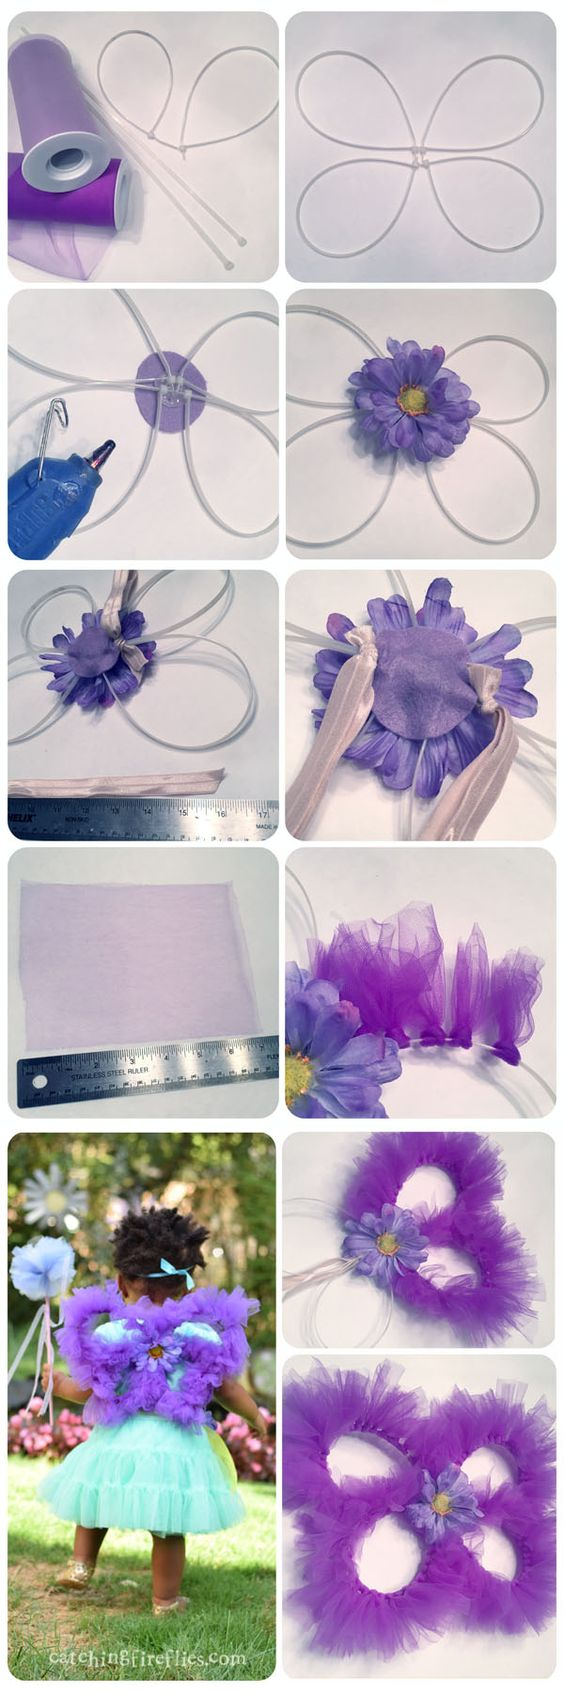 DIY Fairy Wings With Tulle.